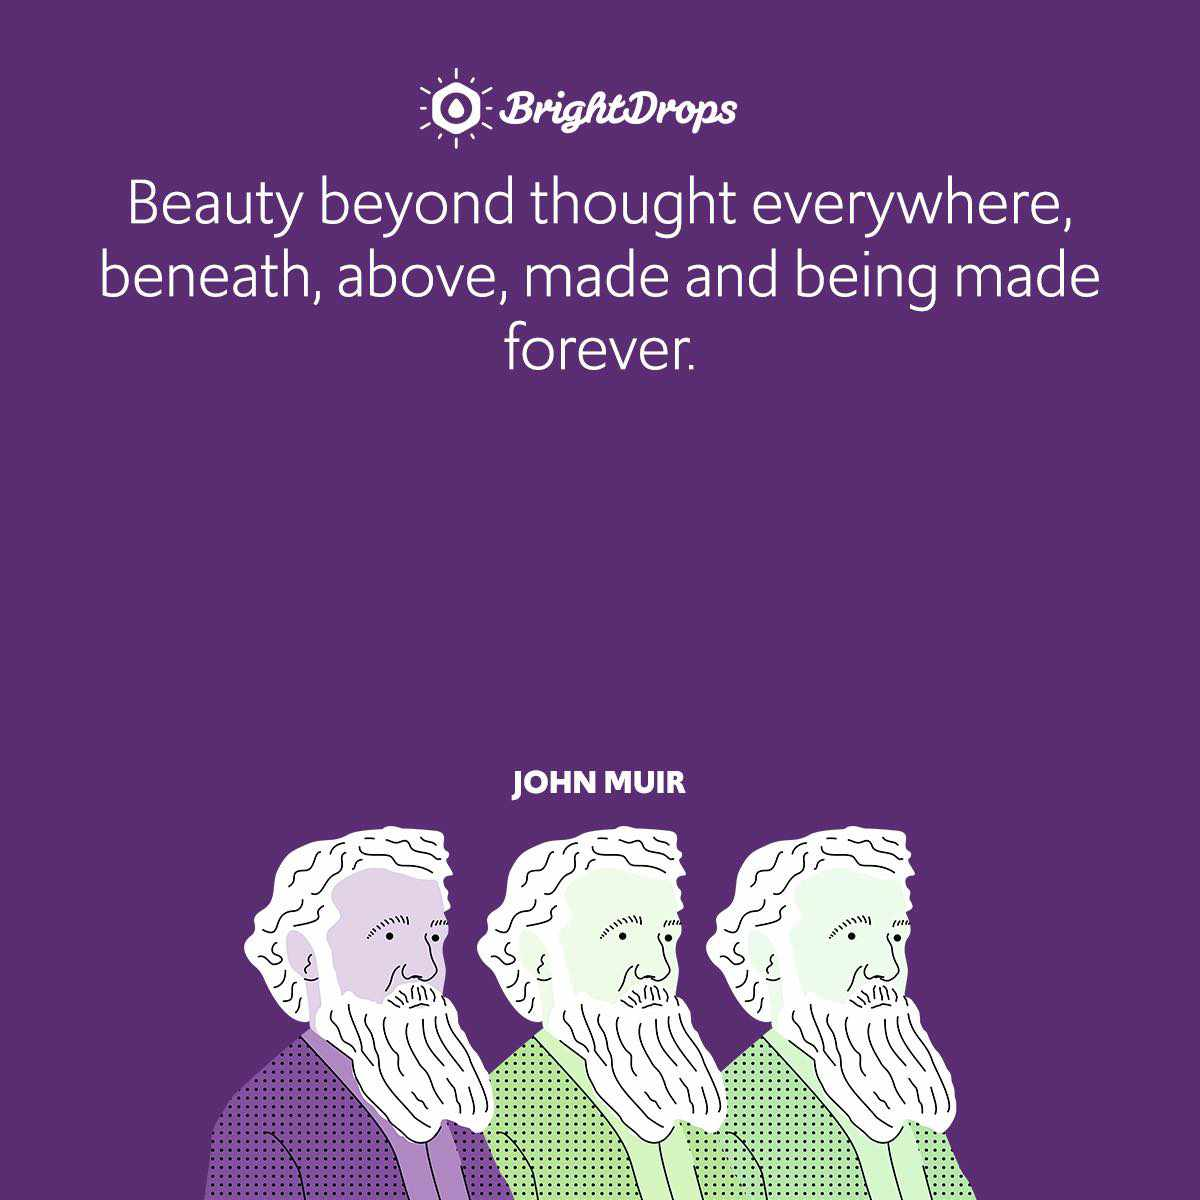 Beauty beyond thought everywhere, beneath, above, made and being made forever.